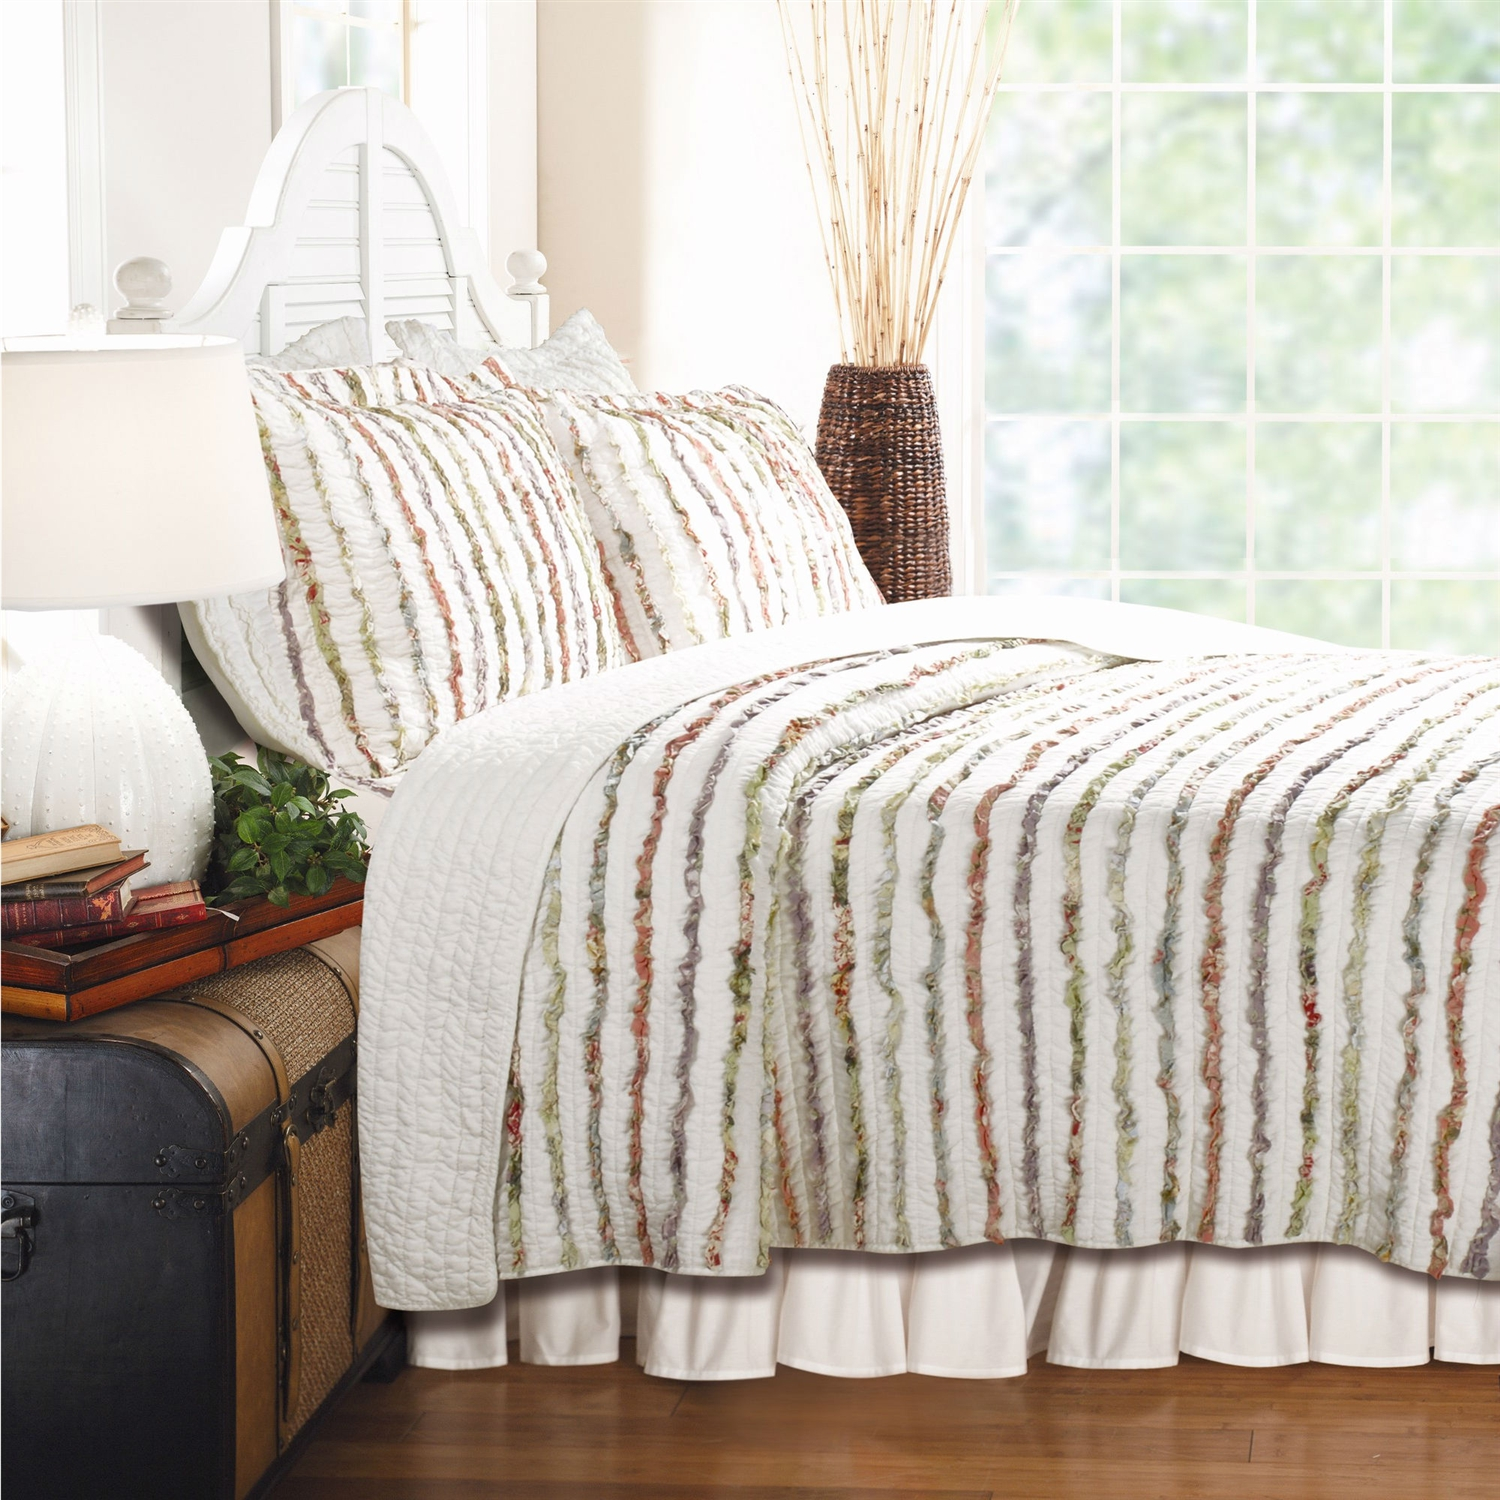 Full / Queen 100% Cotton Quilt Set Ruffled Multi-color Stripes ... : quilted cotton coverlet - Adamdwight.com